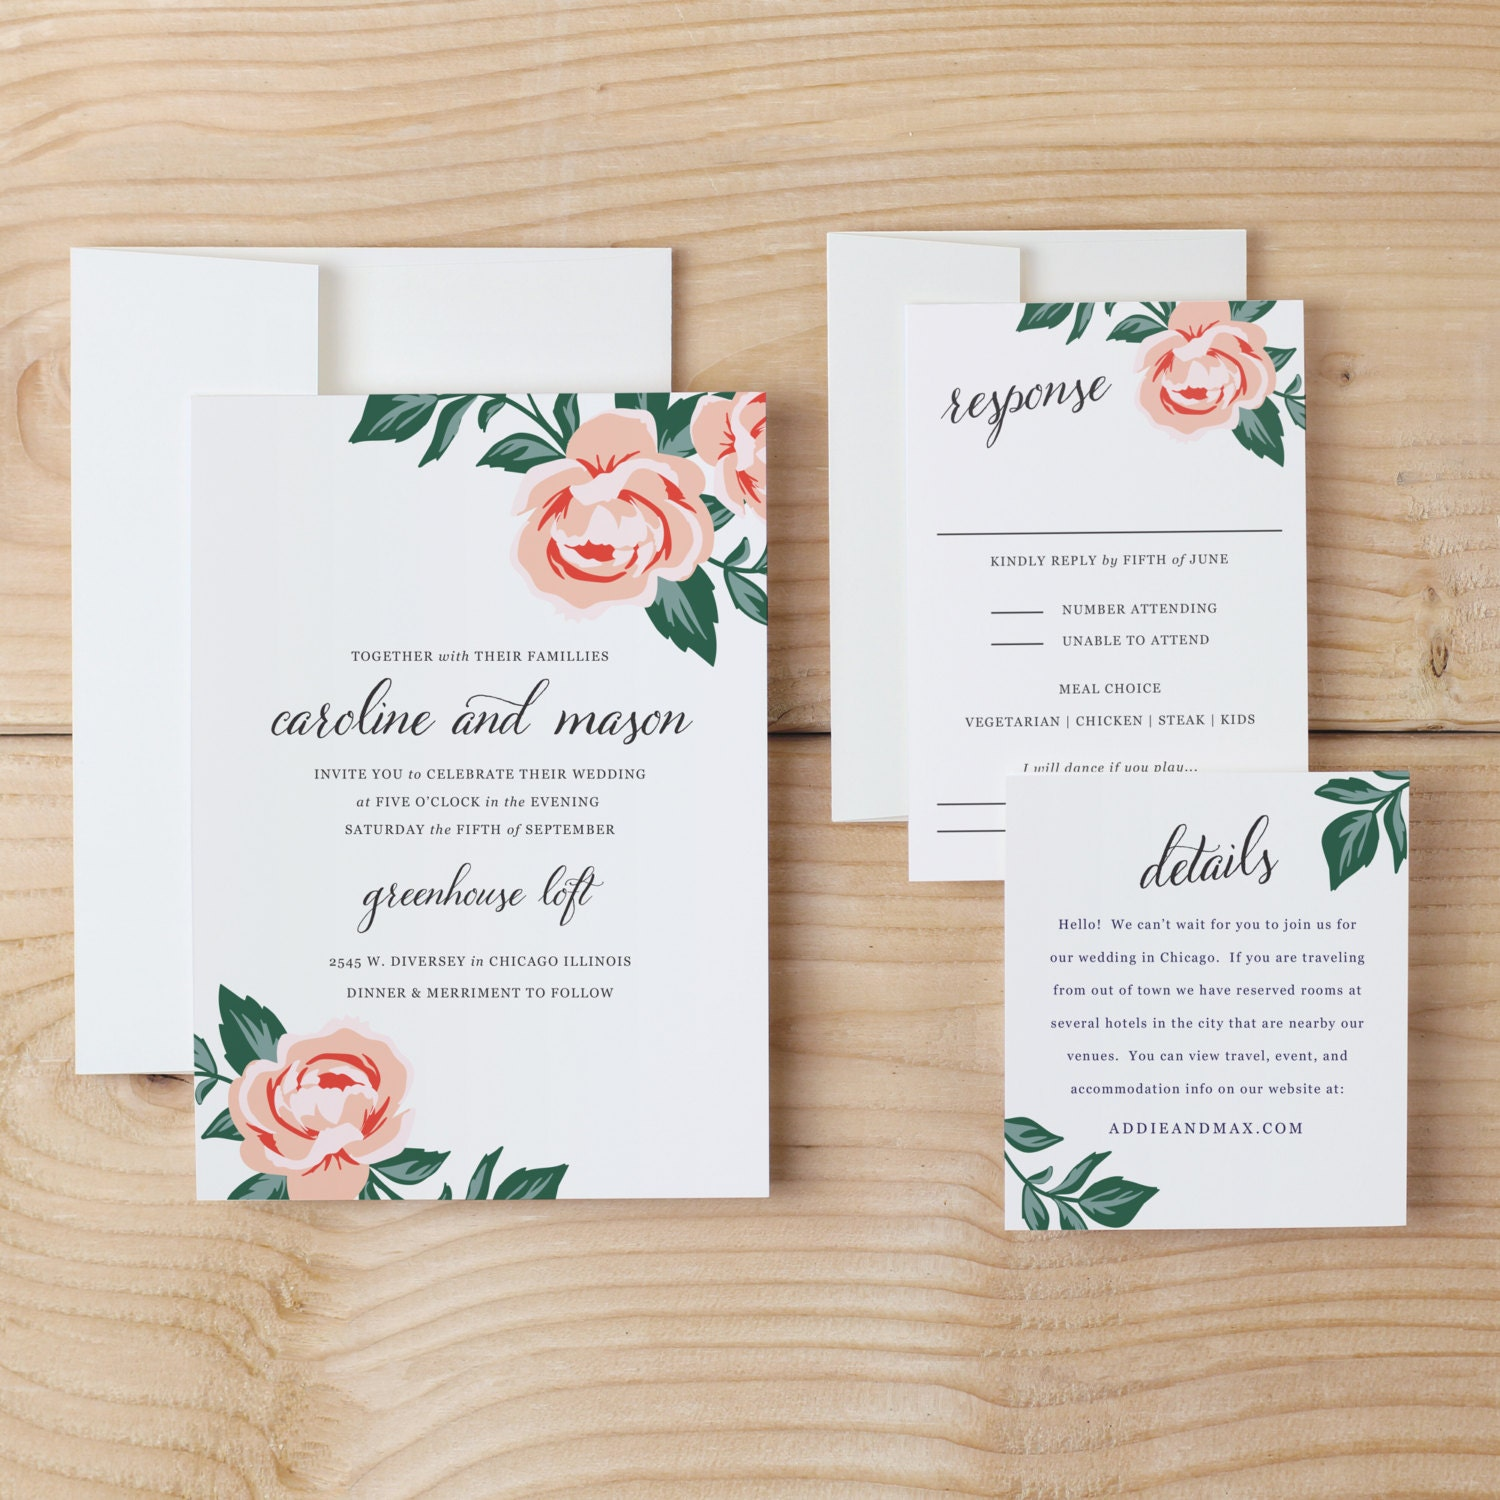 Diy wedding invitation template colorful floral word or pages diy wedding invitation template colorful floral word or pages mac or pc change the colors text print at home instant download stopboris Images